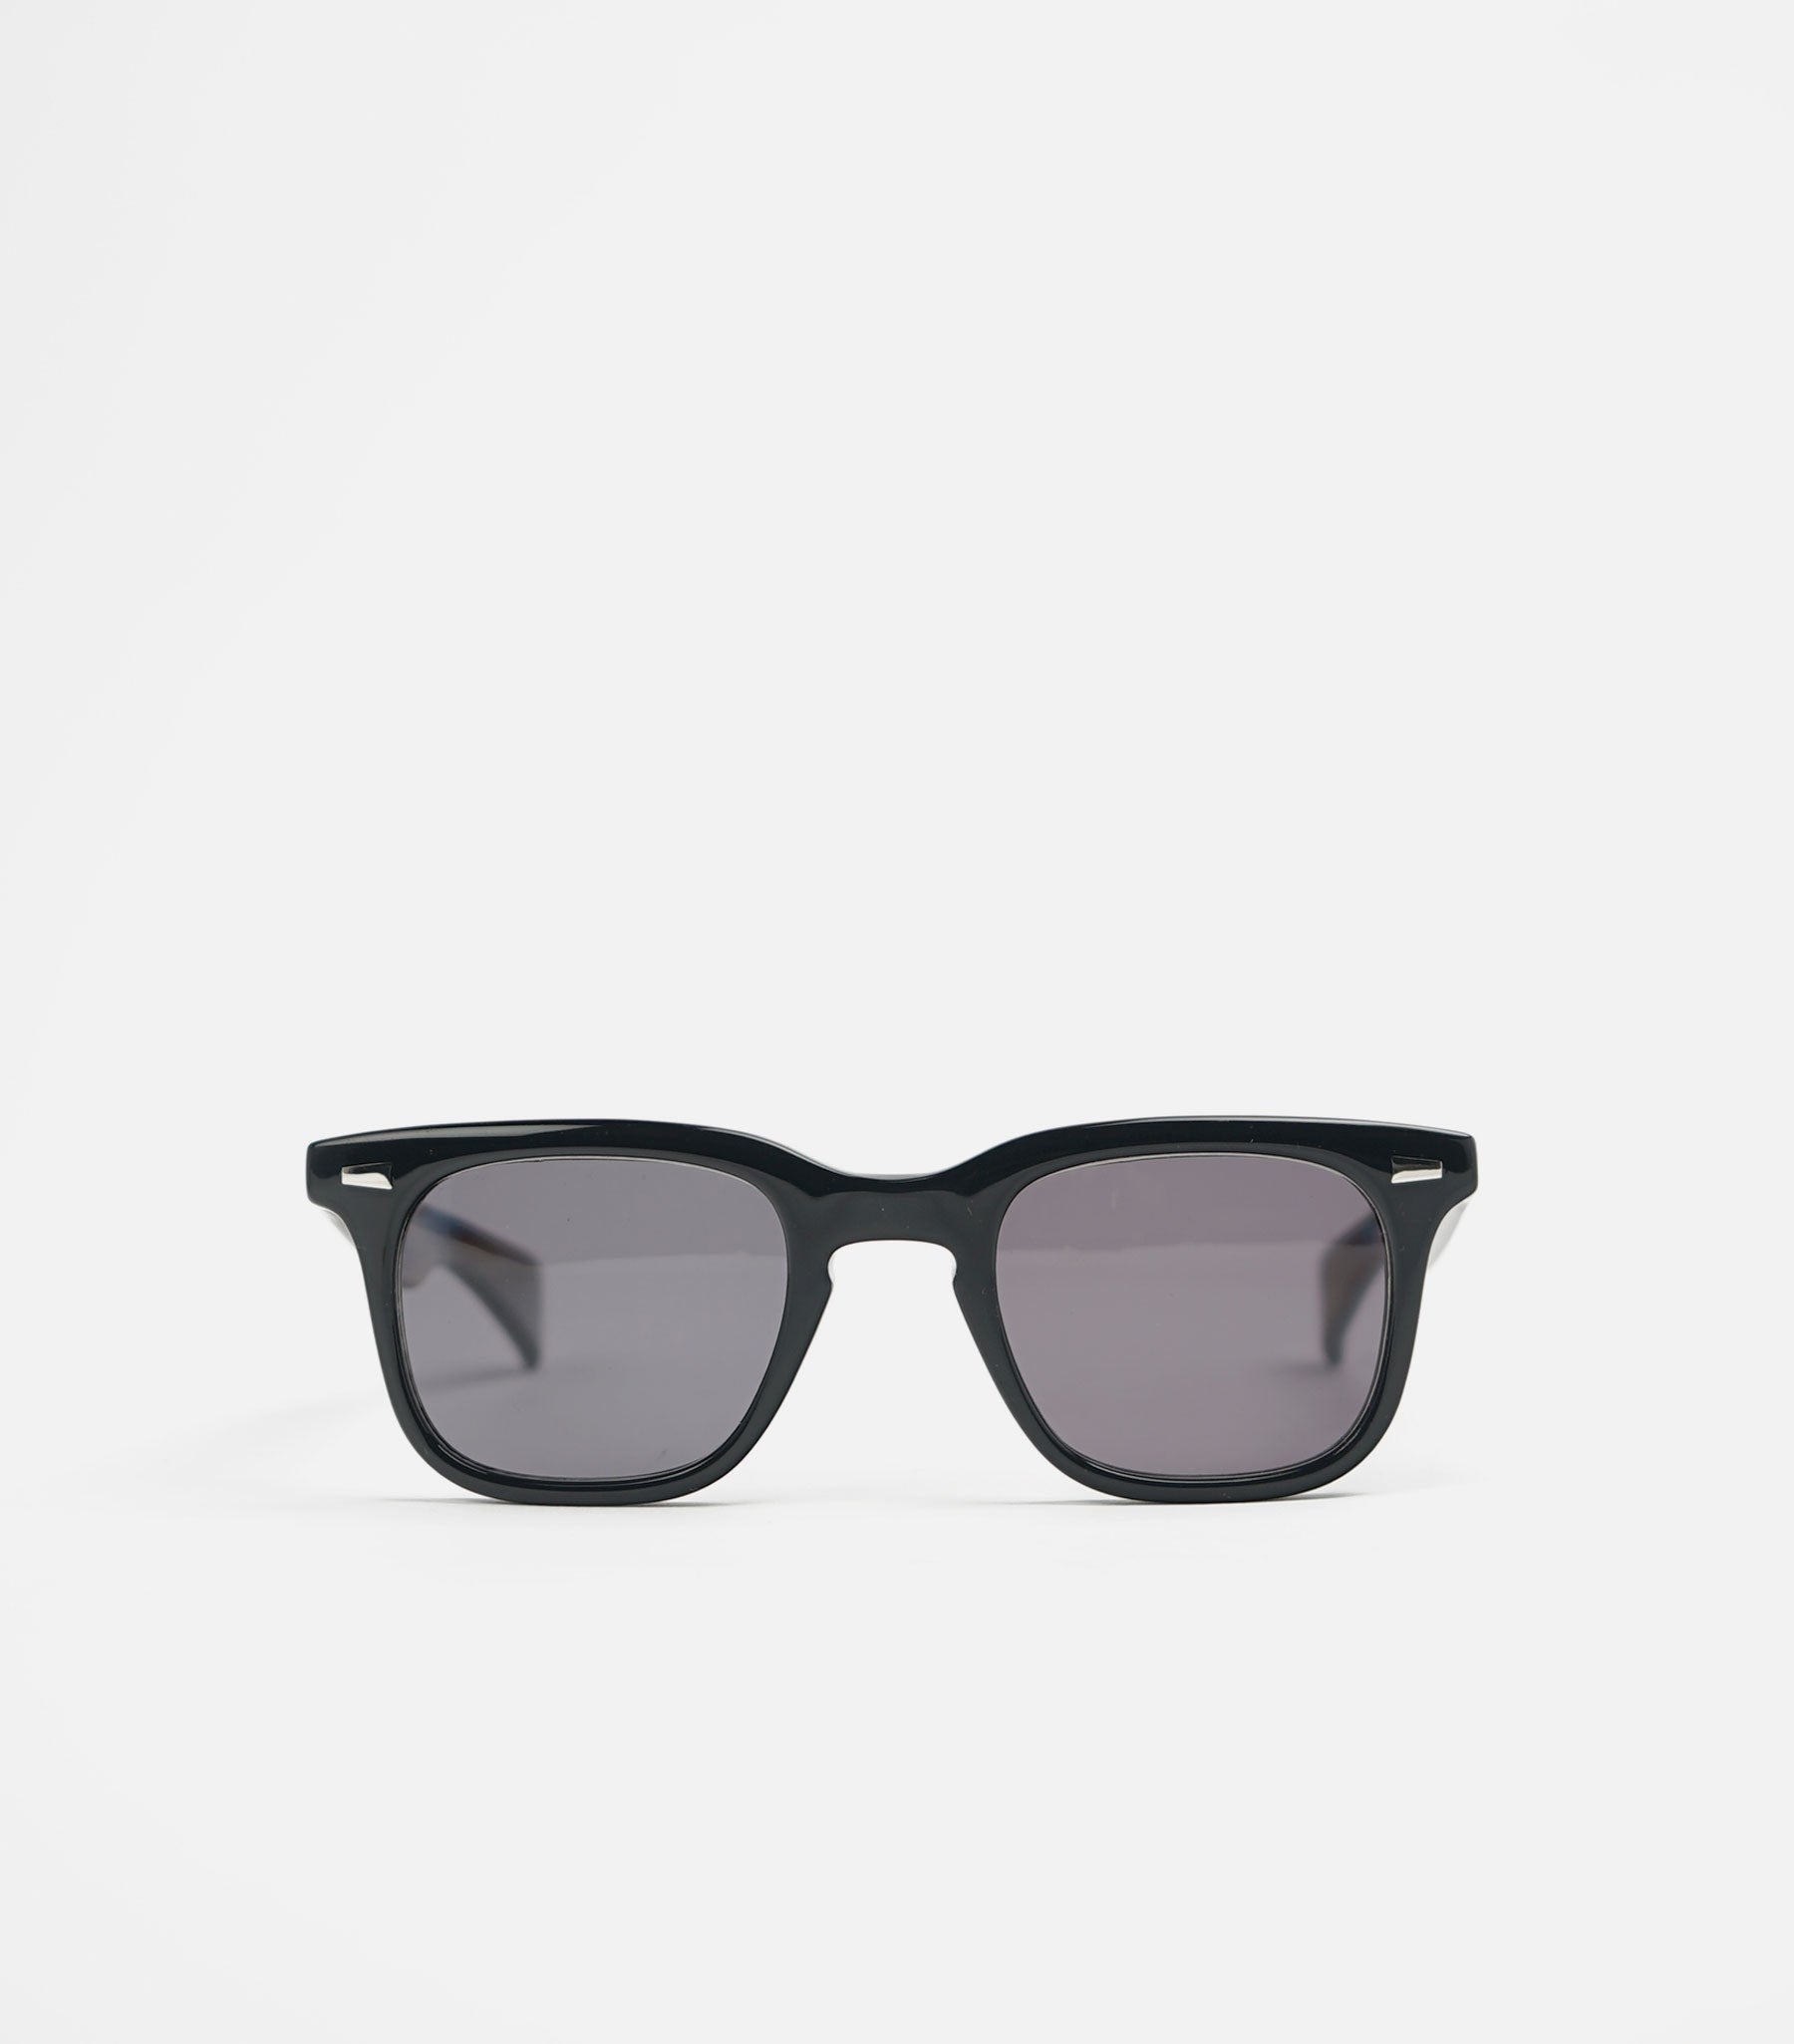 SKY Sunglasses Black